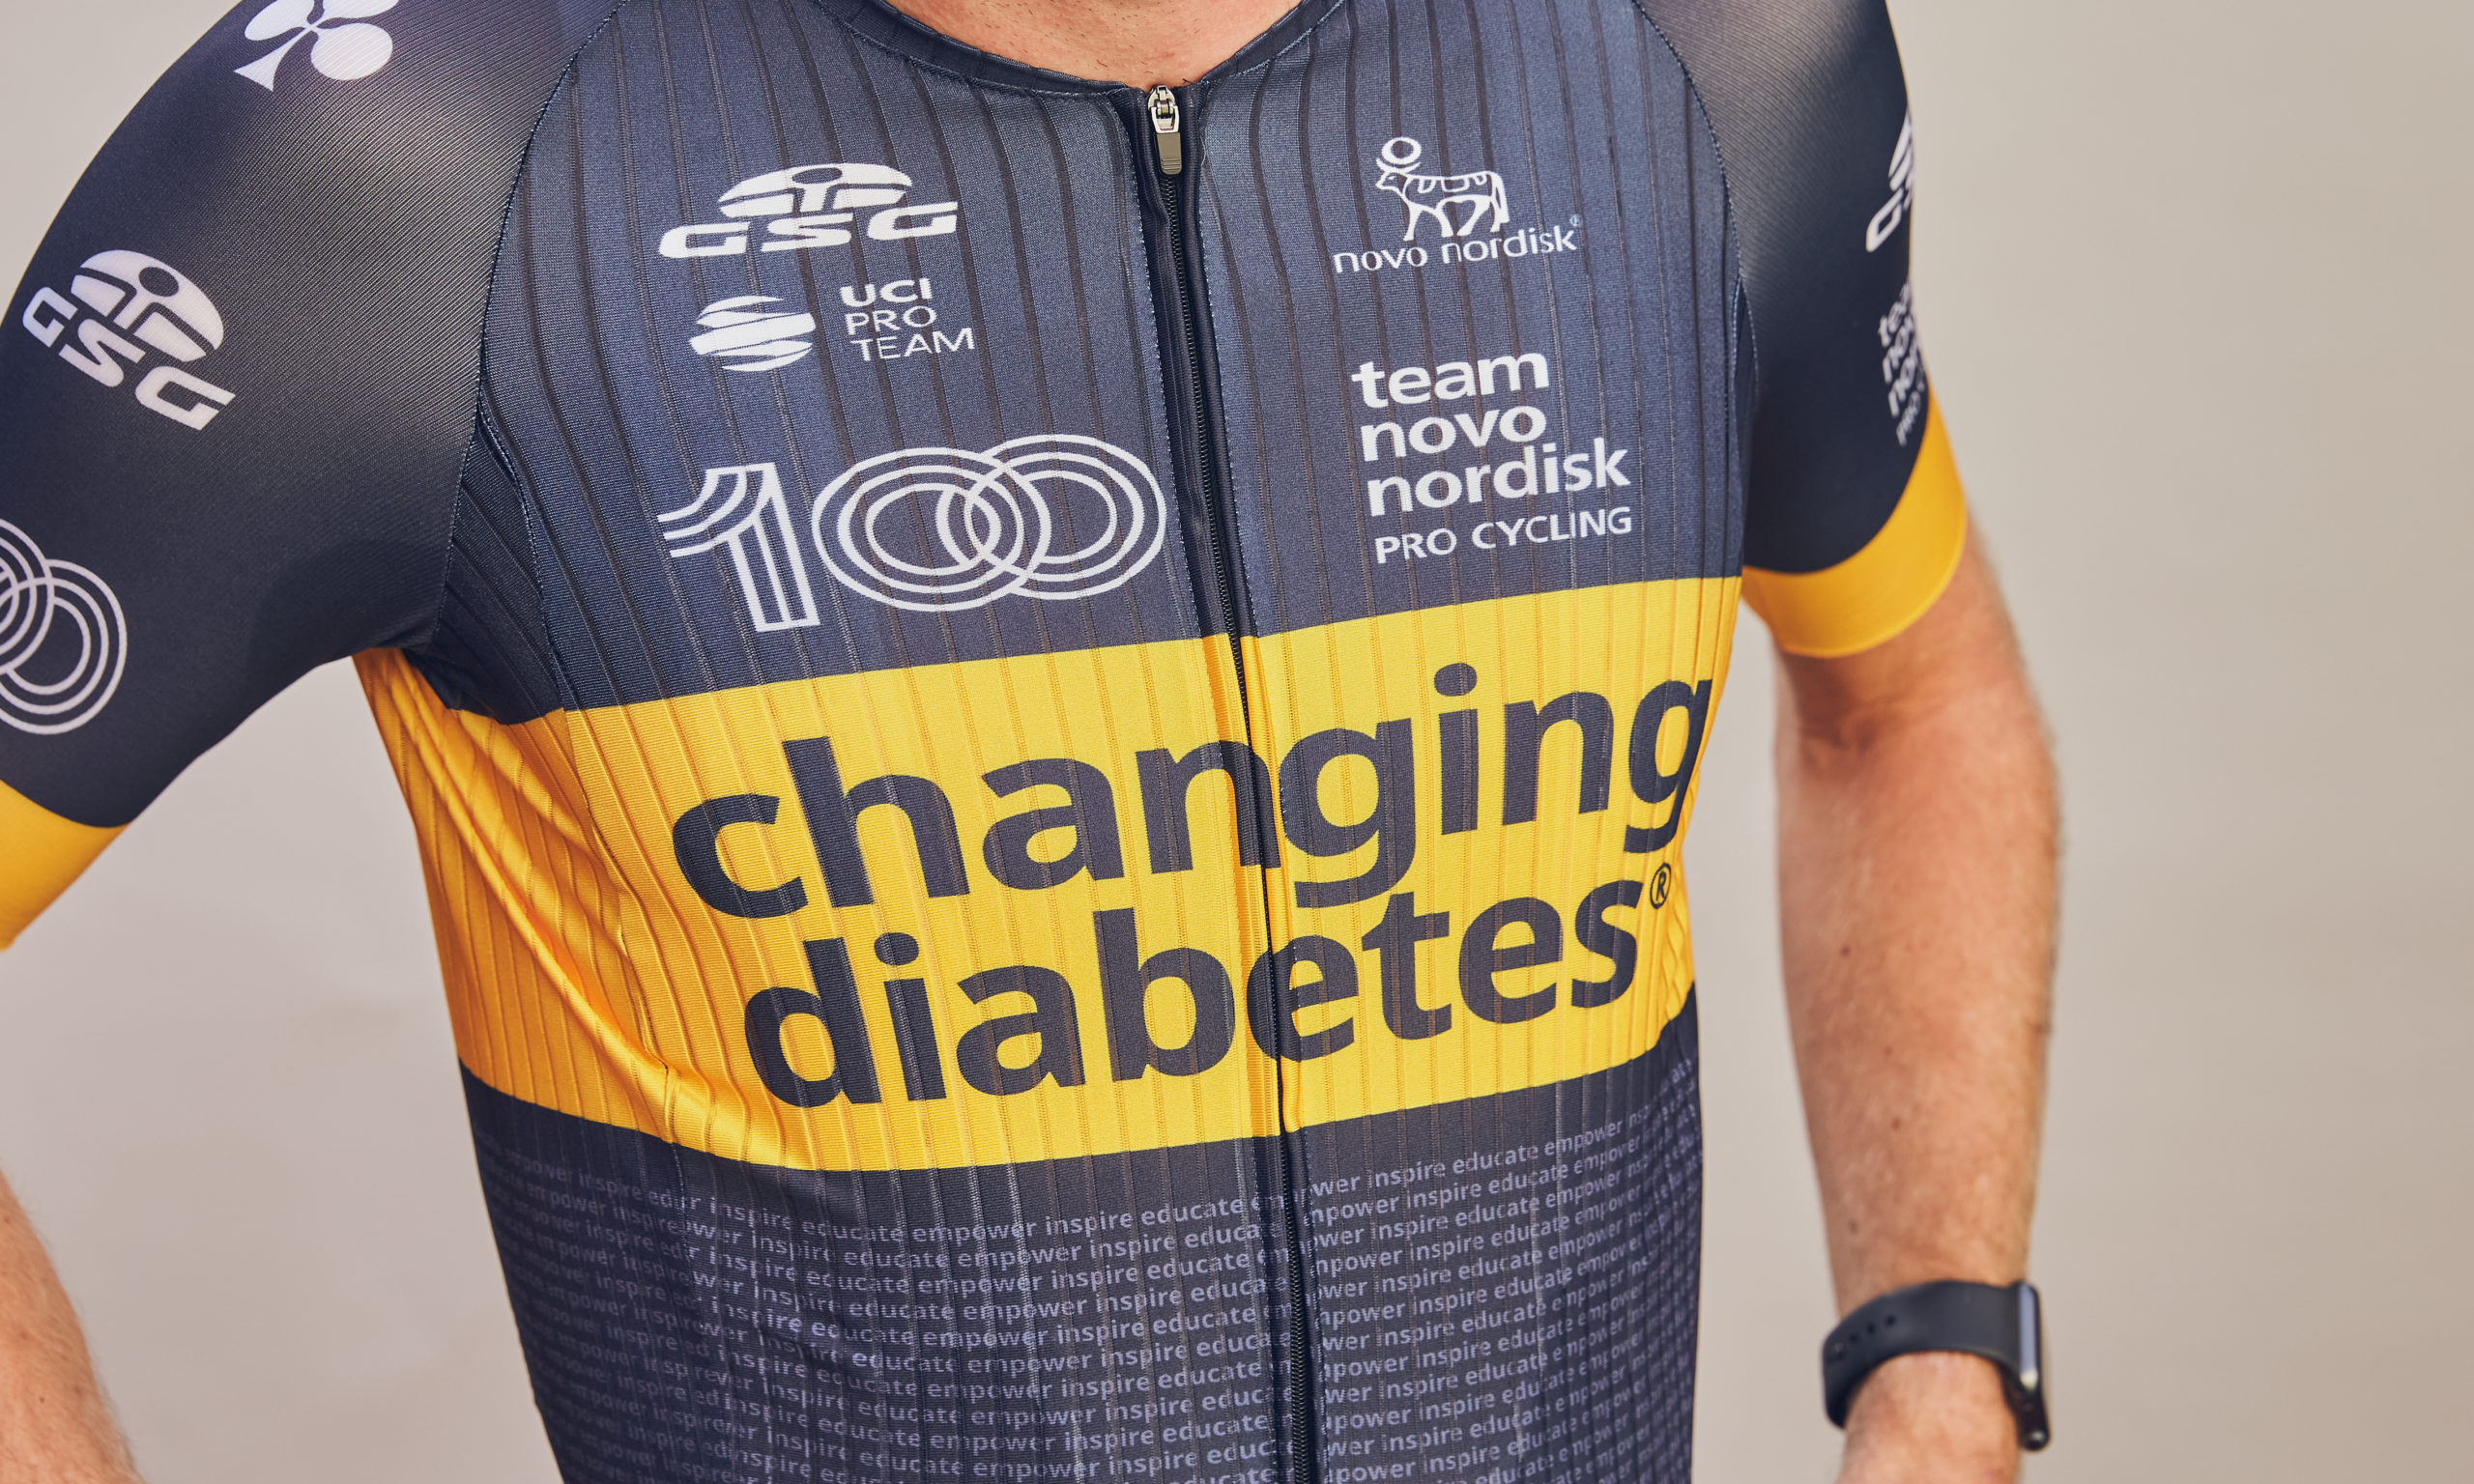 TNN Camp | All-Diabetes Pro Cycling Team | Type 1 Diabetes | Team Novo Nordisk